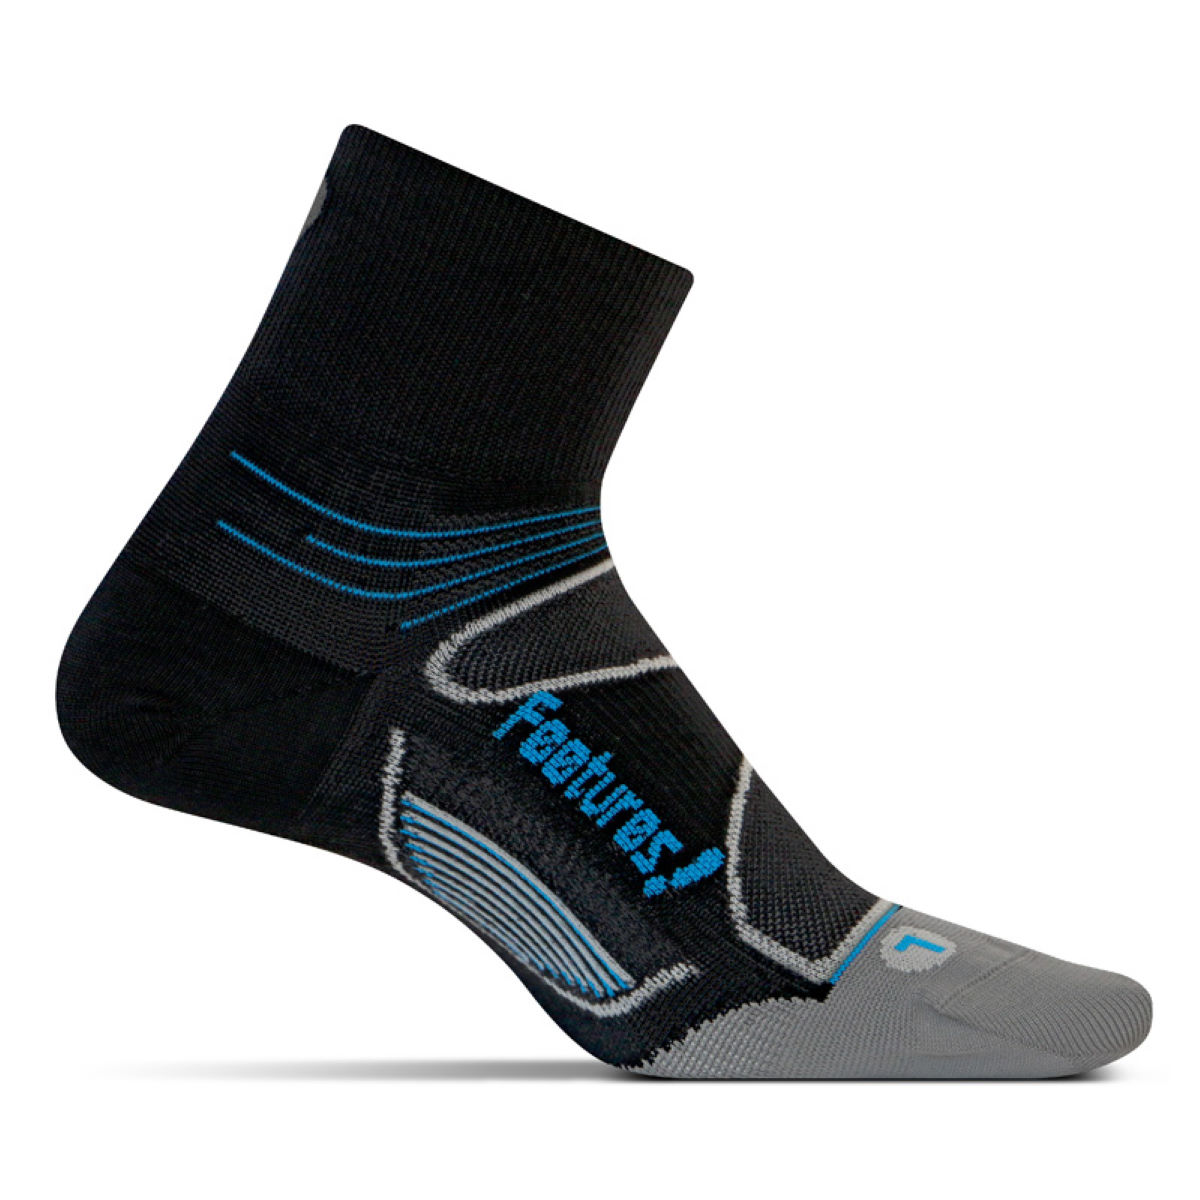 Chaussettes Feetures! Elite Ultra Light Quarter - XL